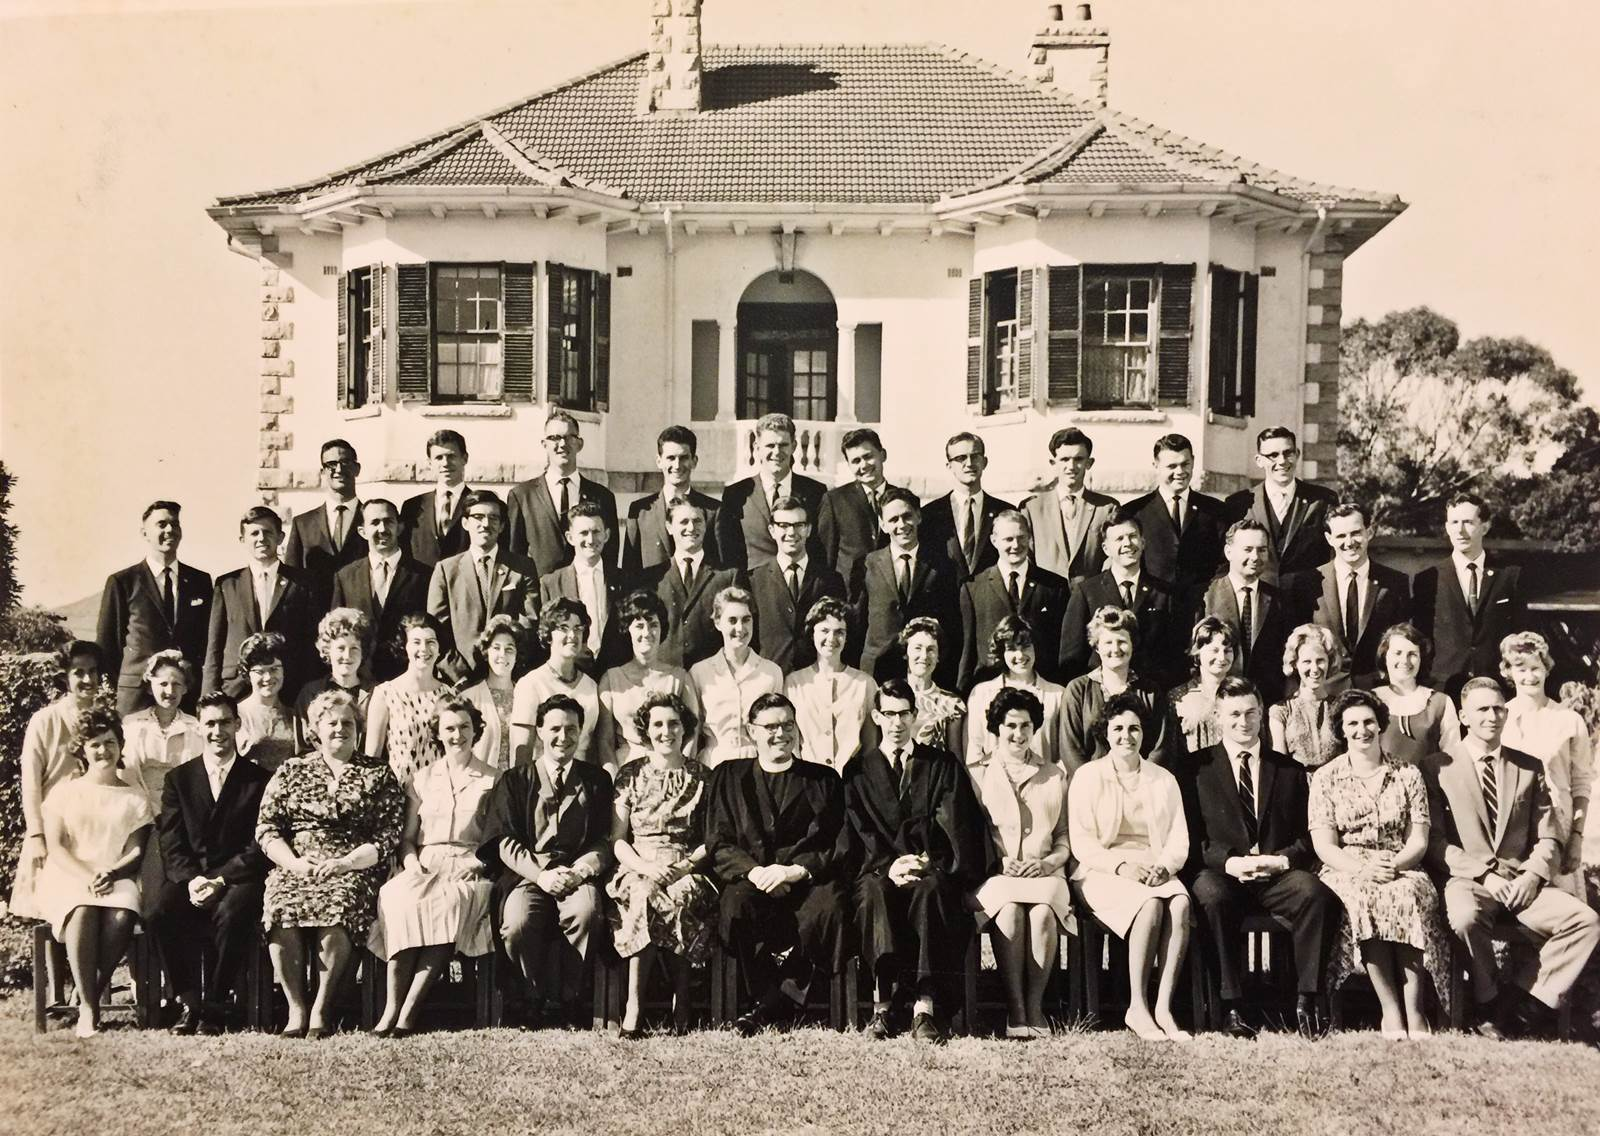 1965 Staff and students for website